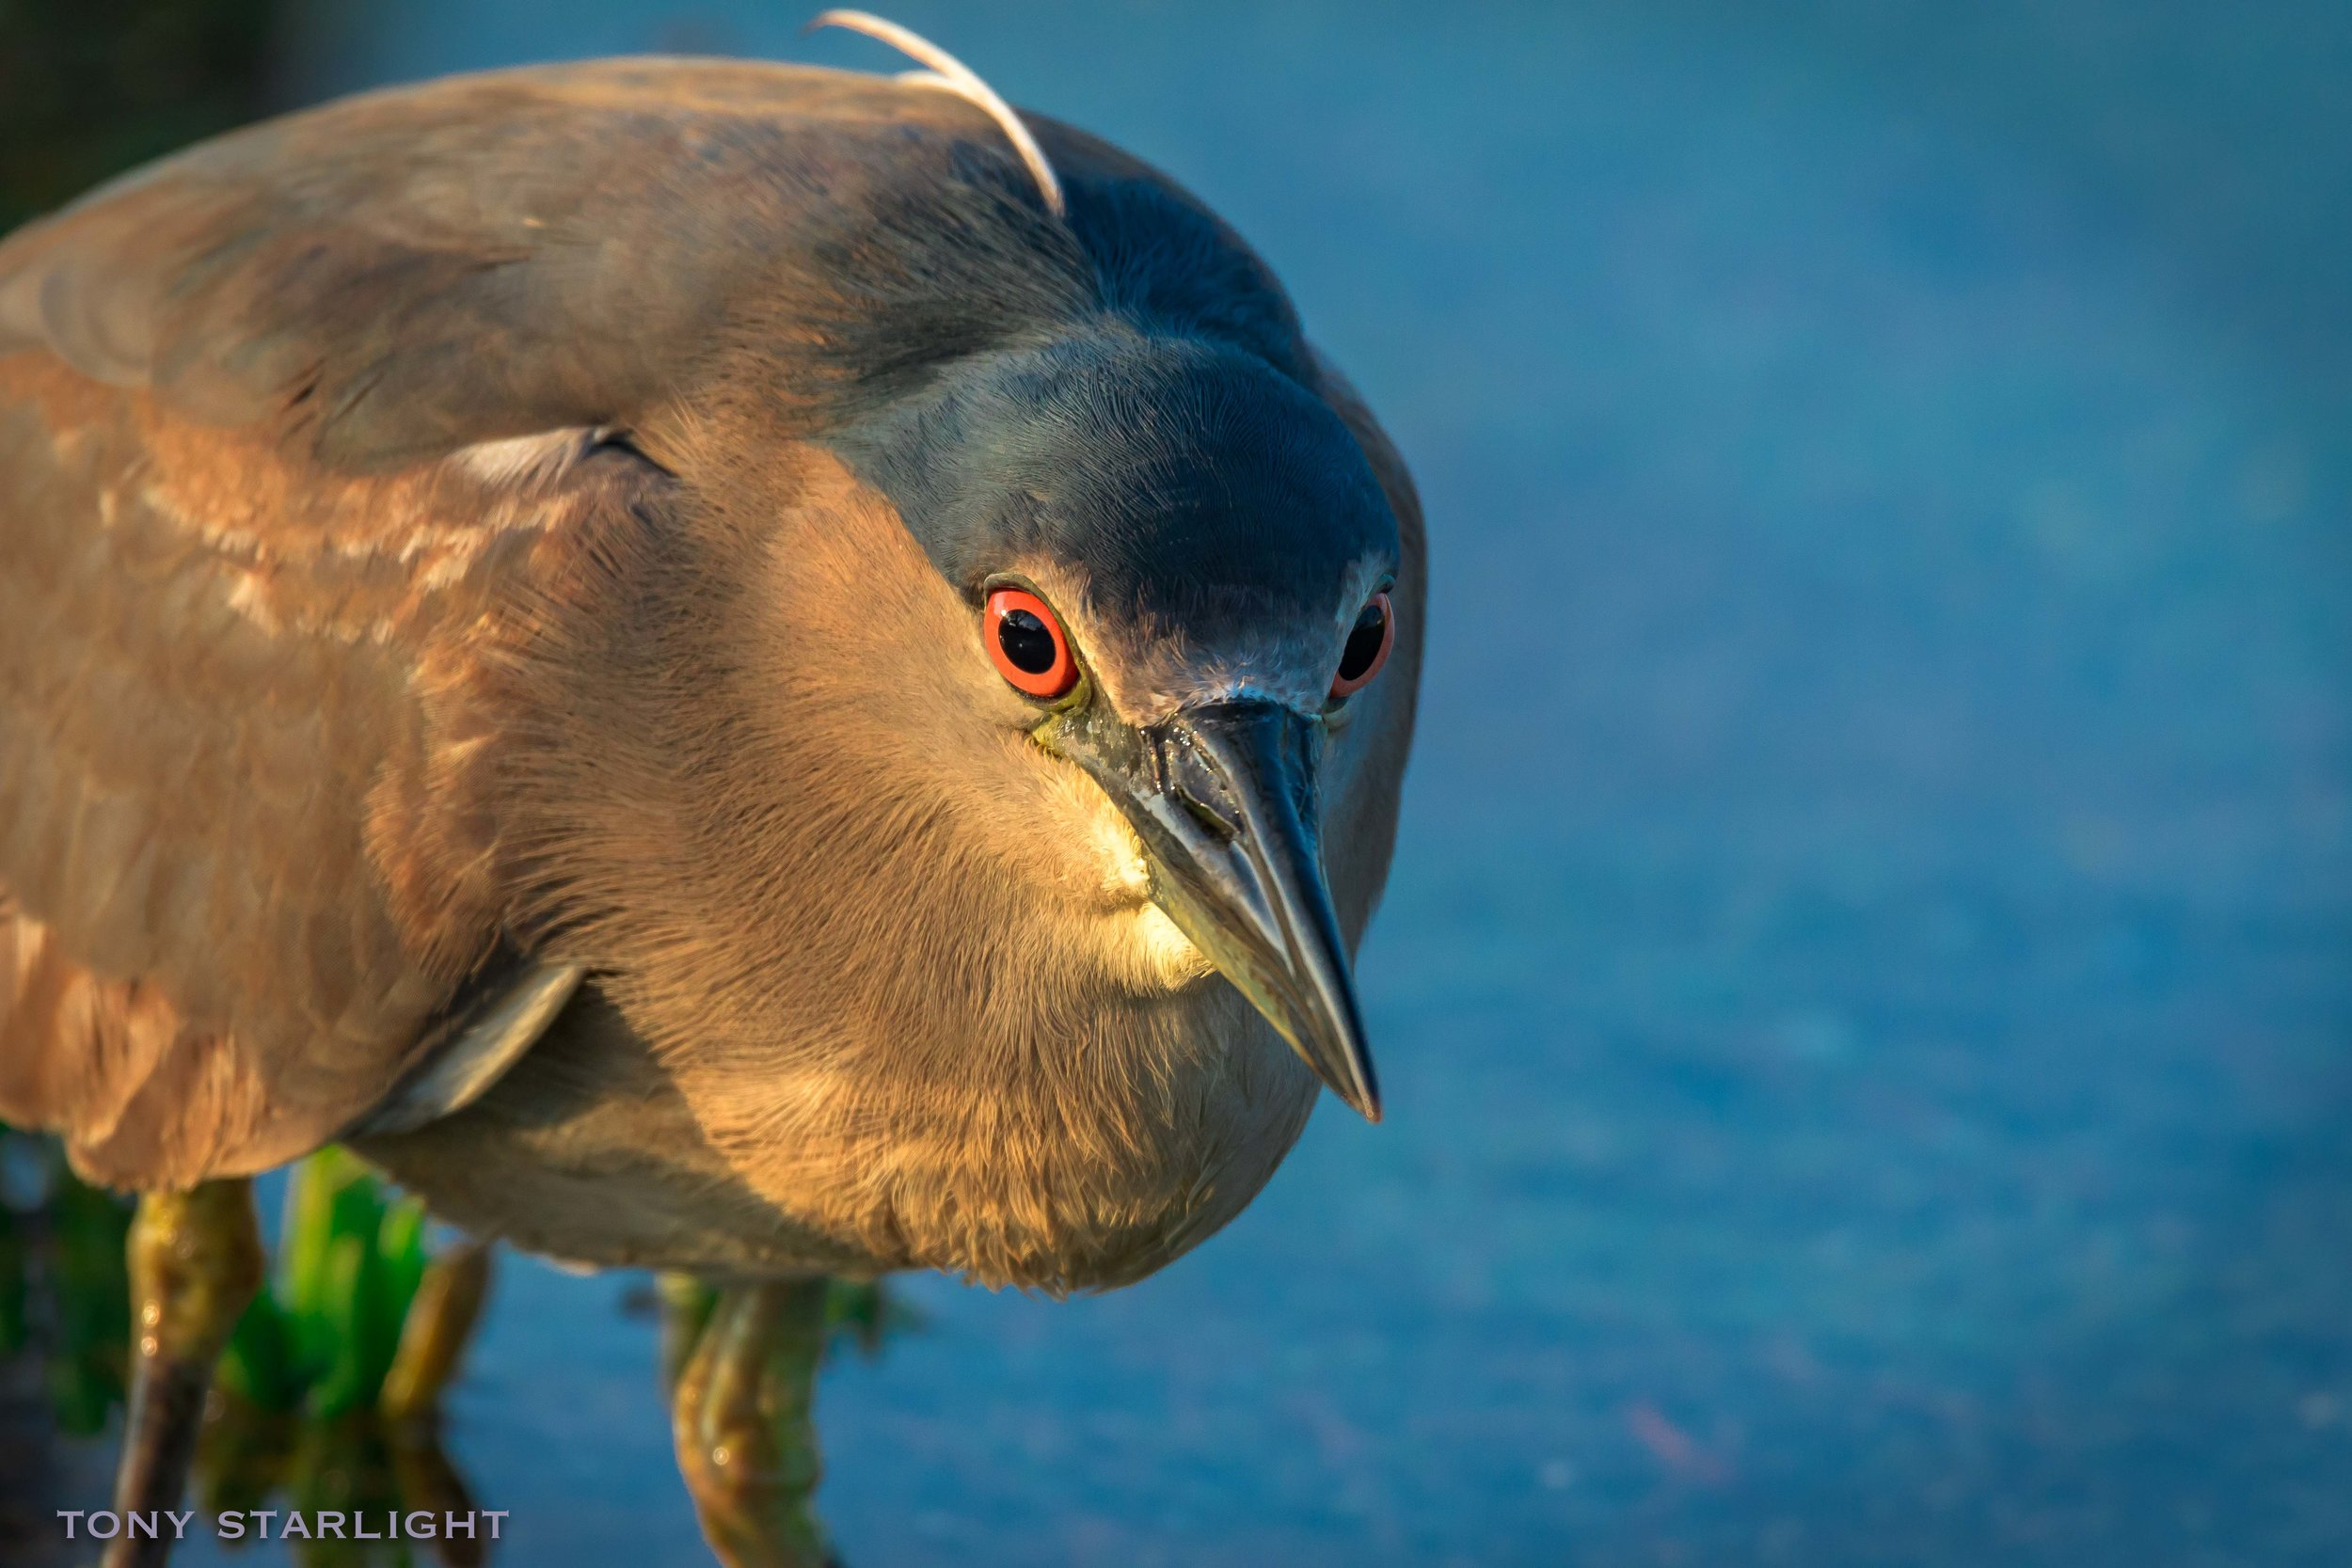 Black-crowned Night-Heron - I've seen several of these in Florida and Oregon but couldn't get any decent pictures, and now I'm blessed with several nice pics.I always wondered what happens when people with hyphenated last names married. I guess it's kinda like this bird's name. Now I know.